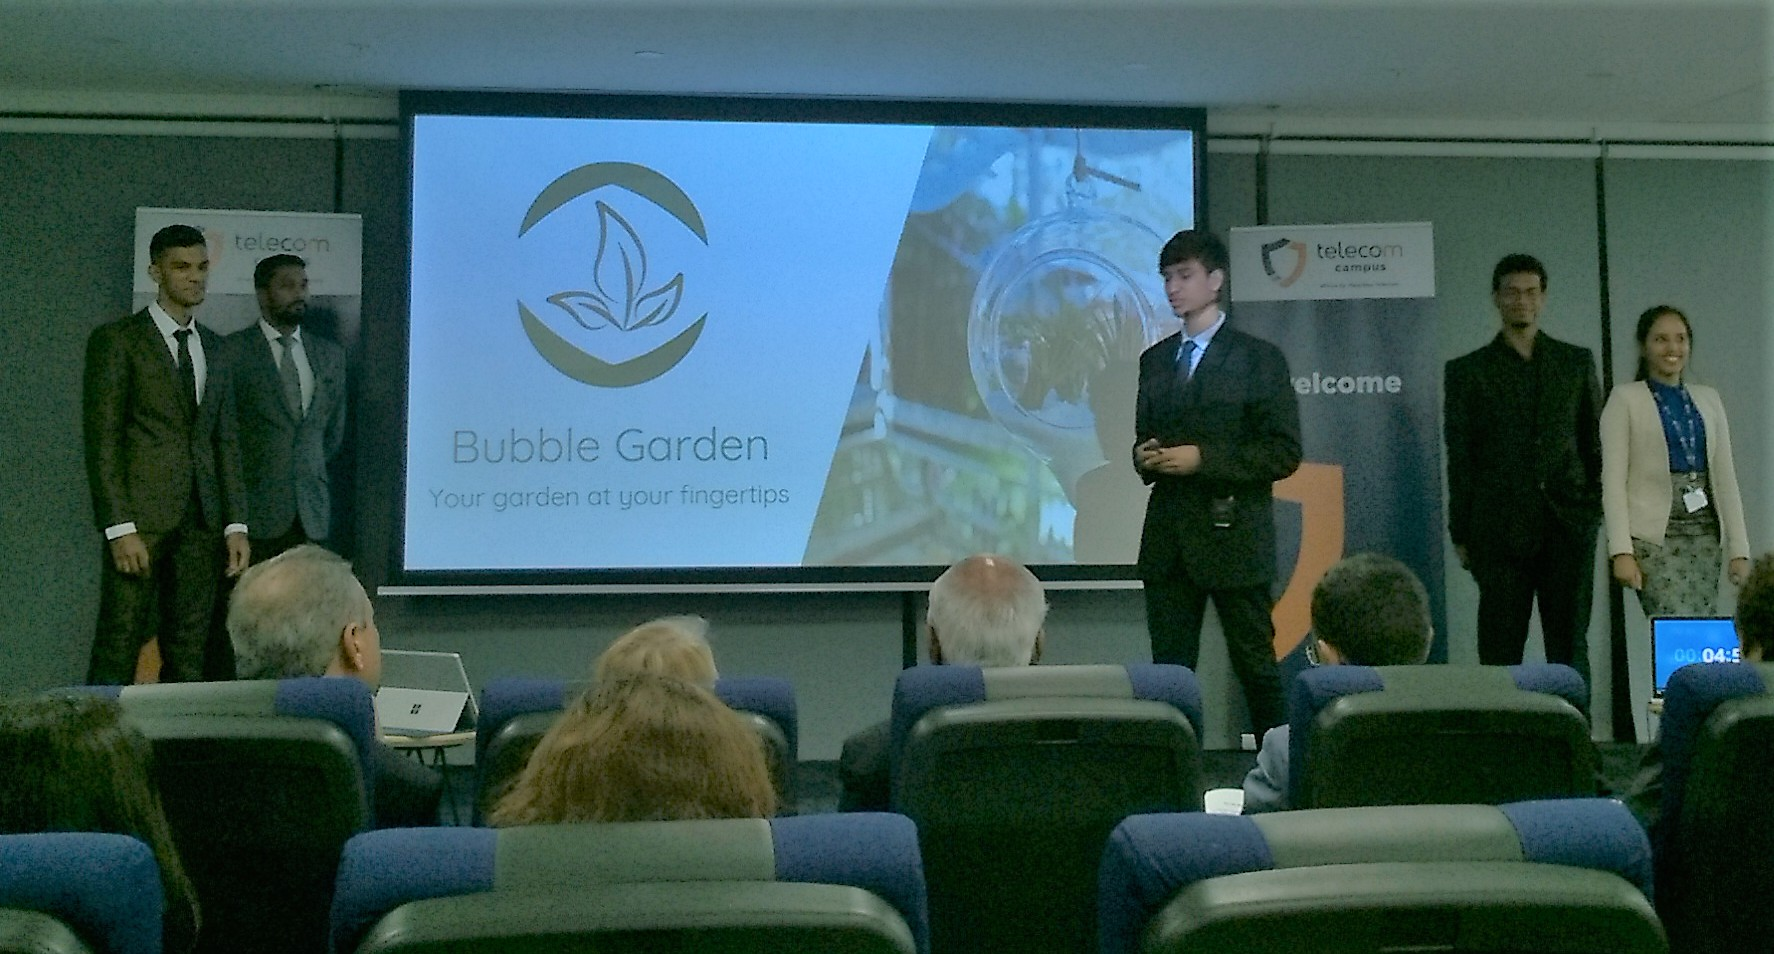 TechGardeners Bubble Garden - Your garden at your fingertips